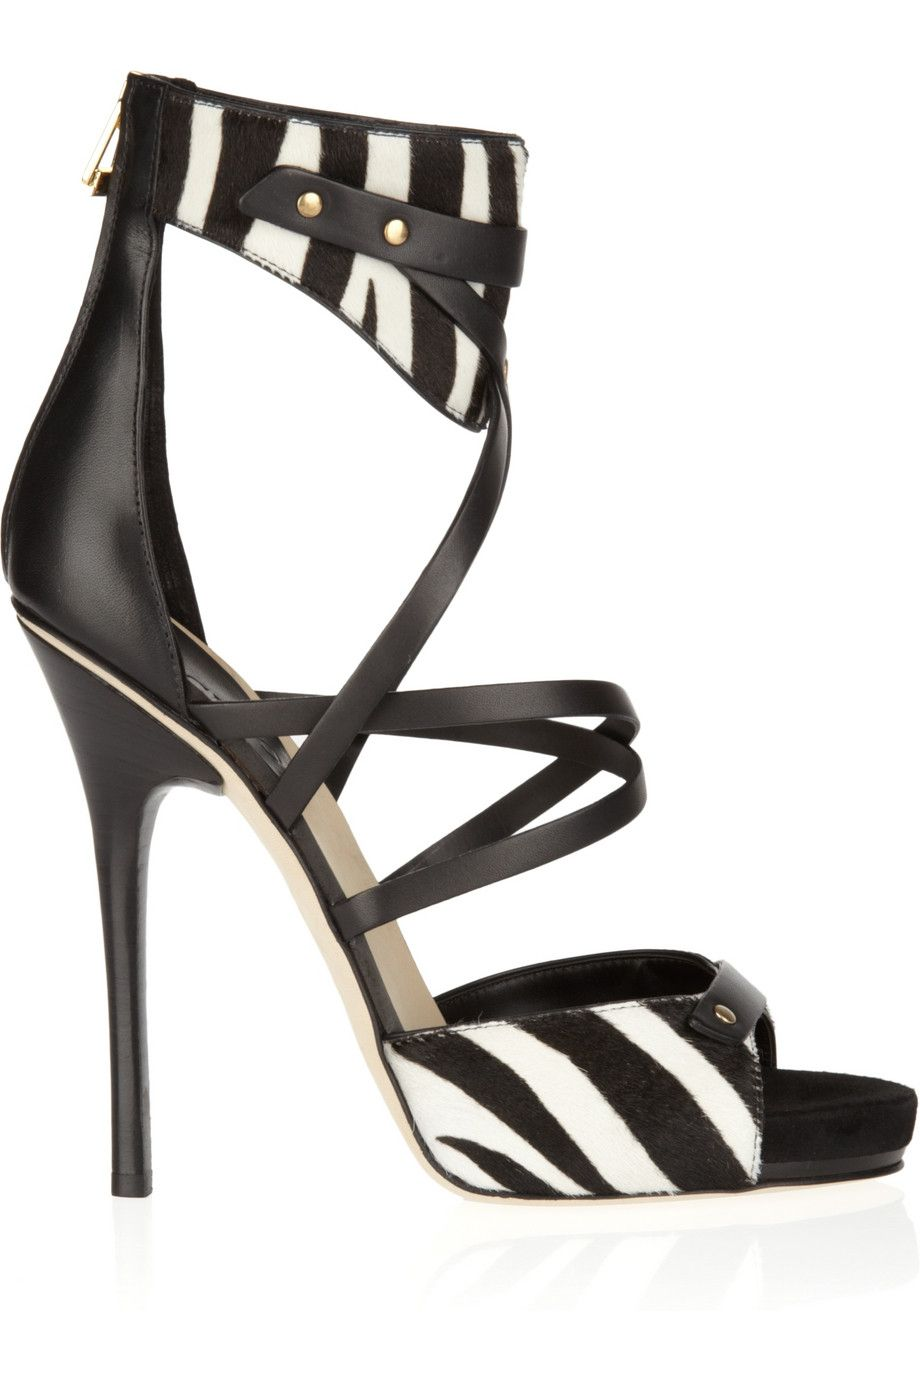 09dff92e824 JIMMY CHOO Jet calf hair and leather sandals